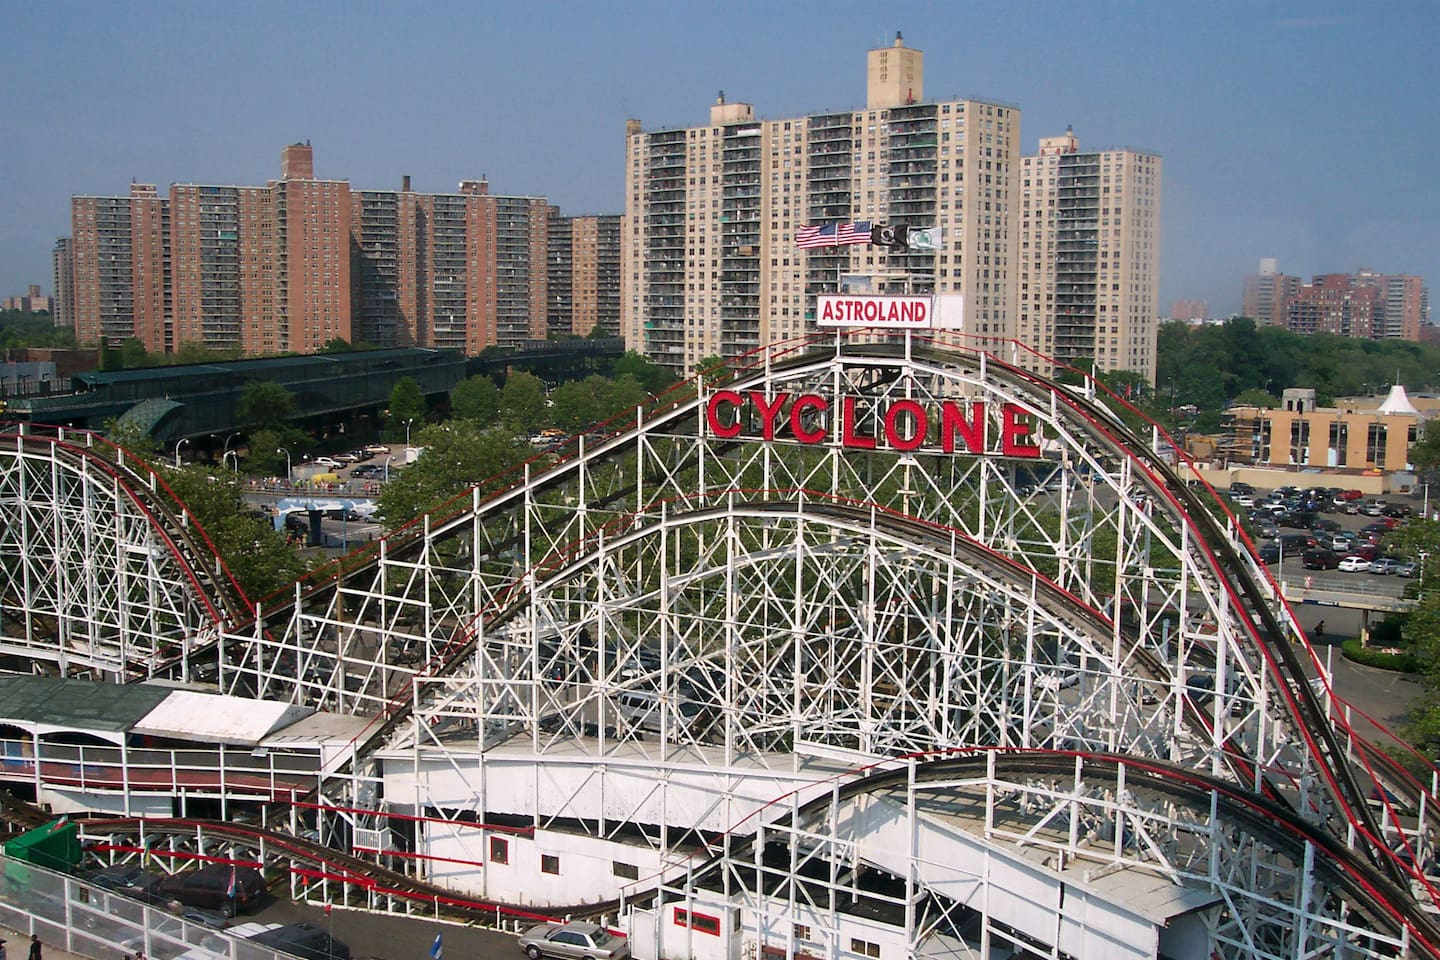 The Coney Island Cyclone (better known as simply the Cyclone) is a historic wooden roller coaster that opened on June 26, 1927, in the Coney Island section of Brooklyn, New York City.